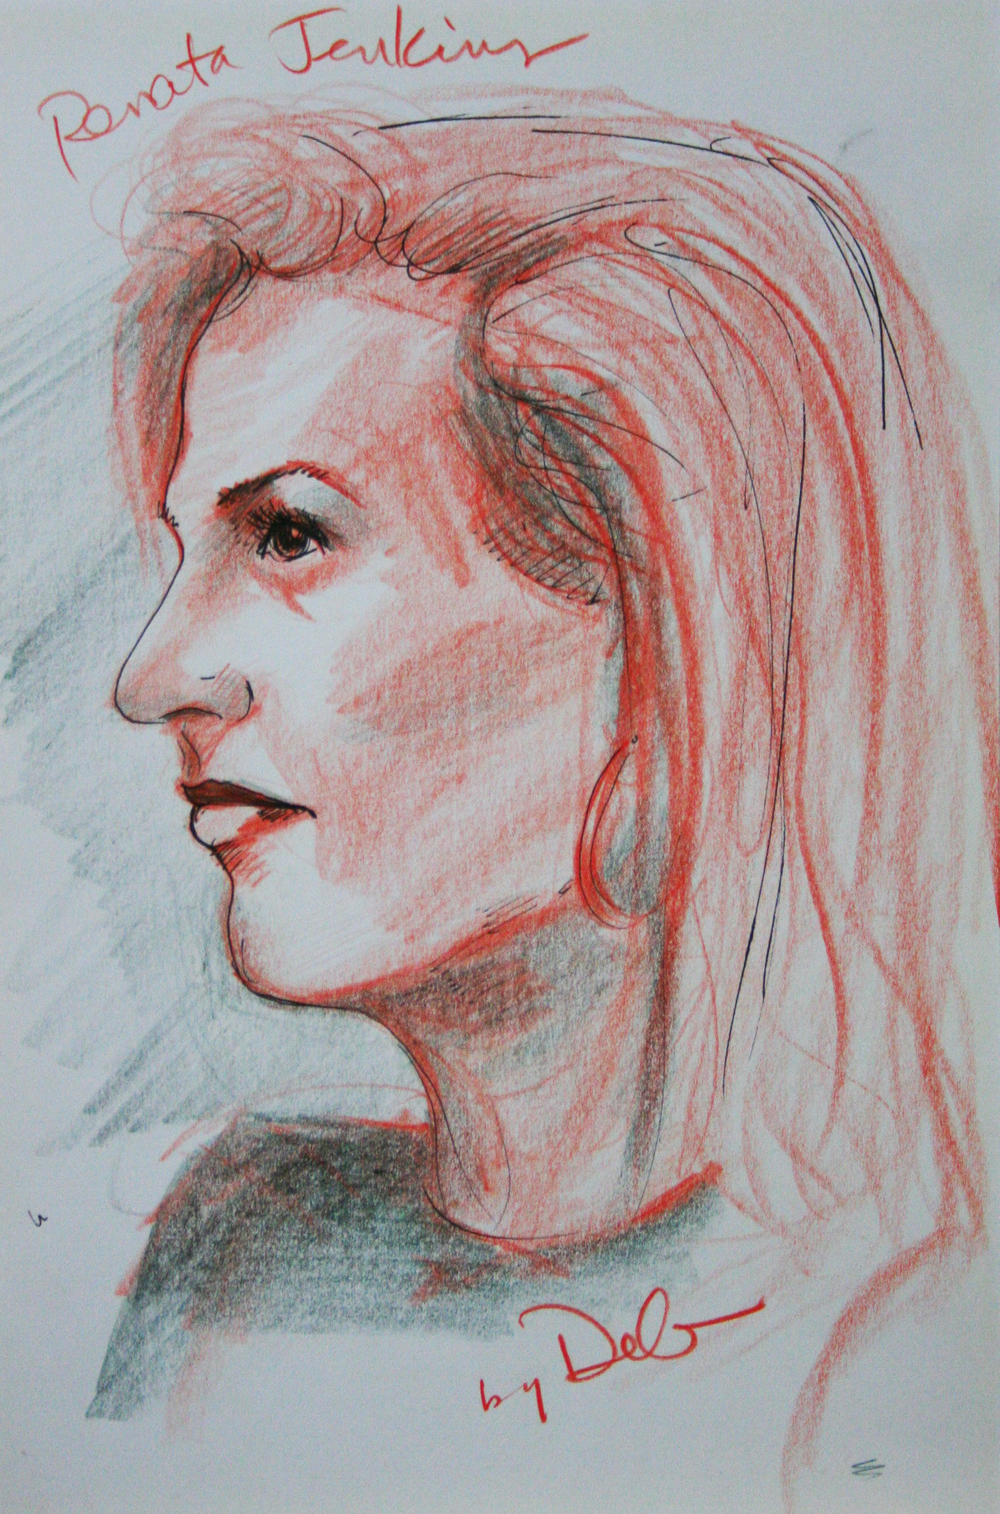 Deb Steytler did this 45-minute drawing.